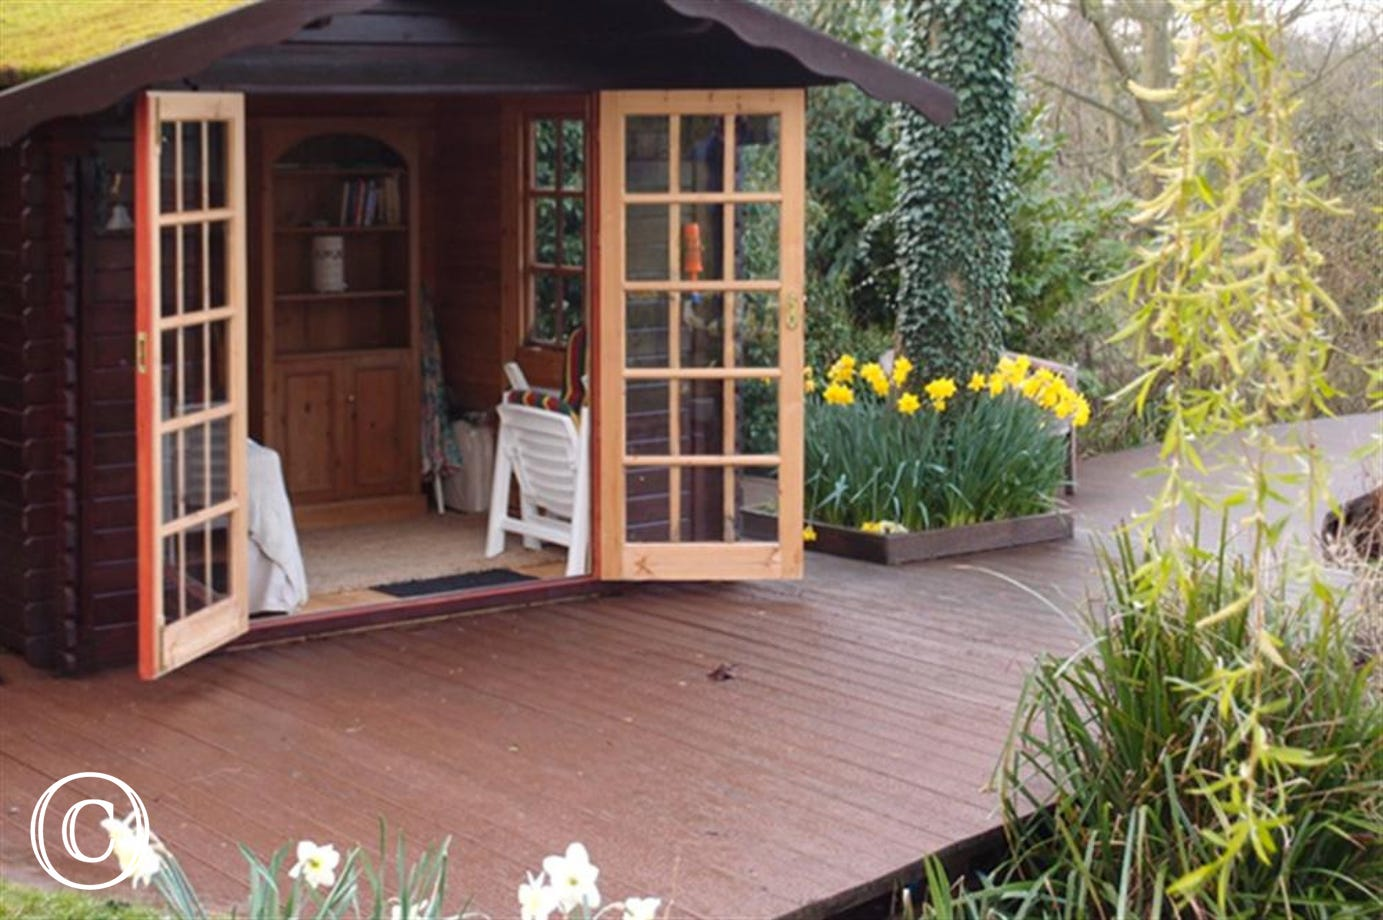 Enjoy this Summer House within the accessible grounds of the property.